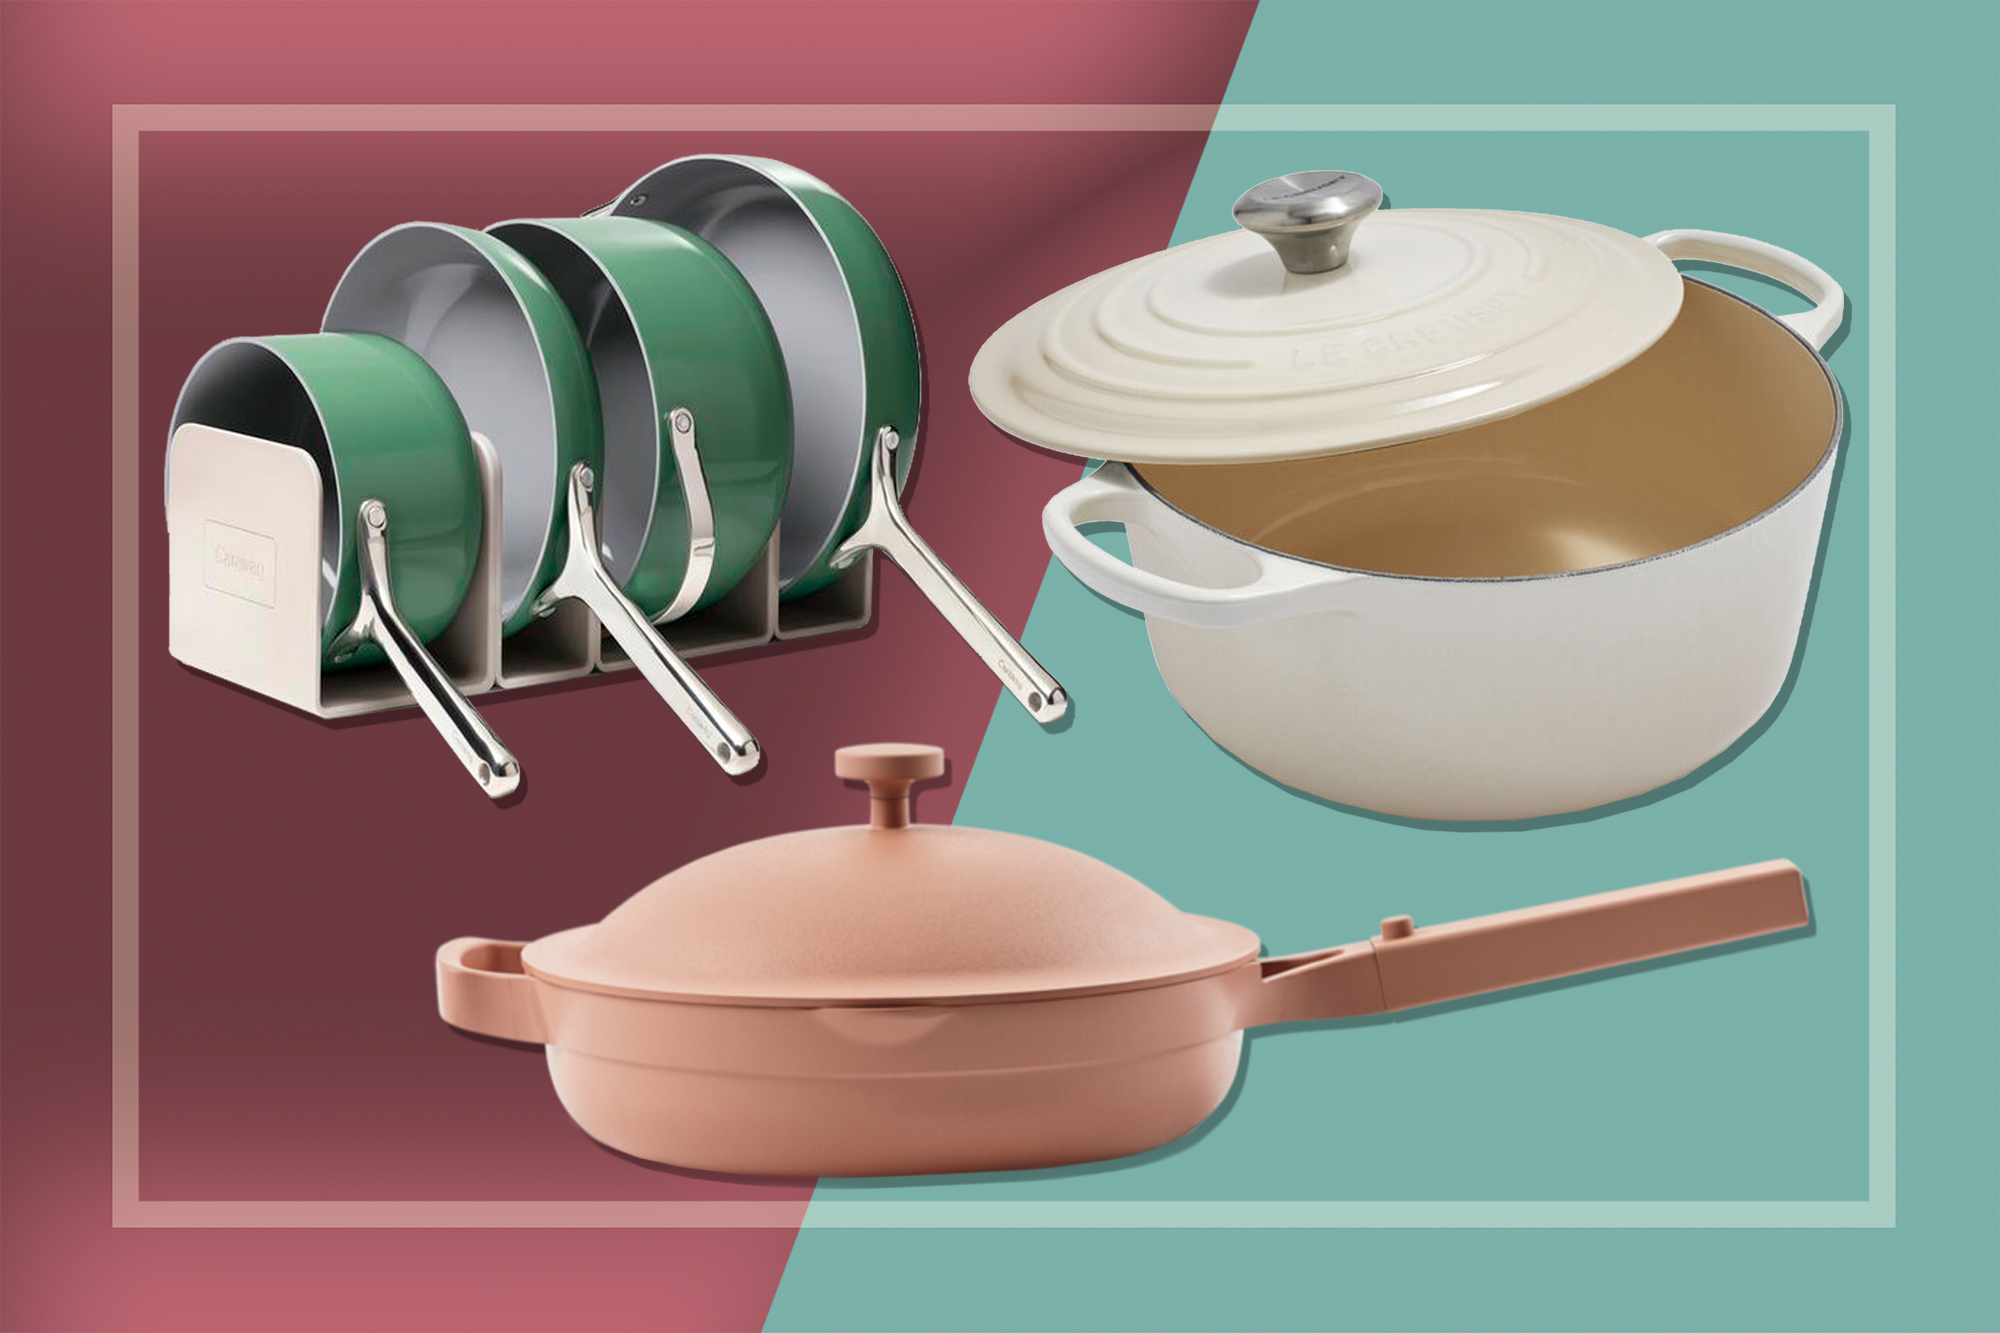 Caraway, Le Creuset, and Our Place cookware